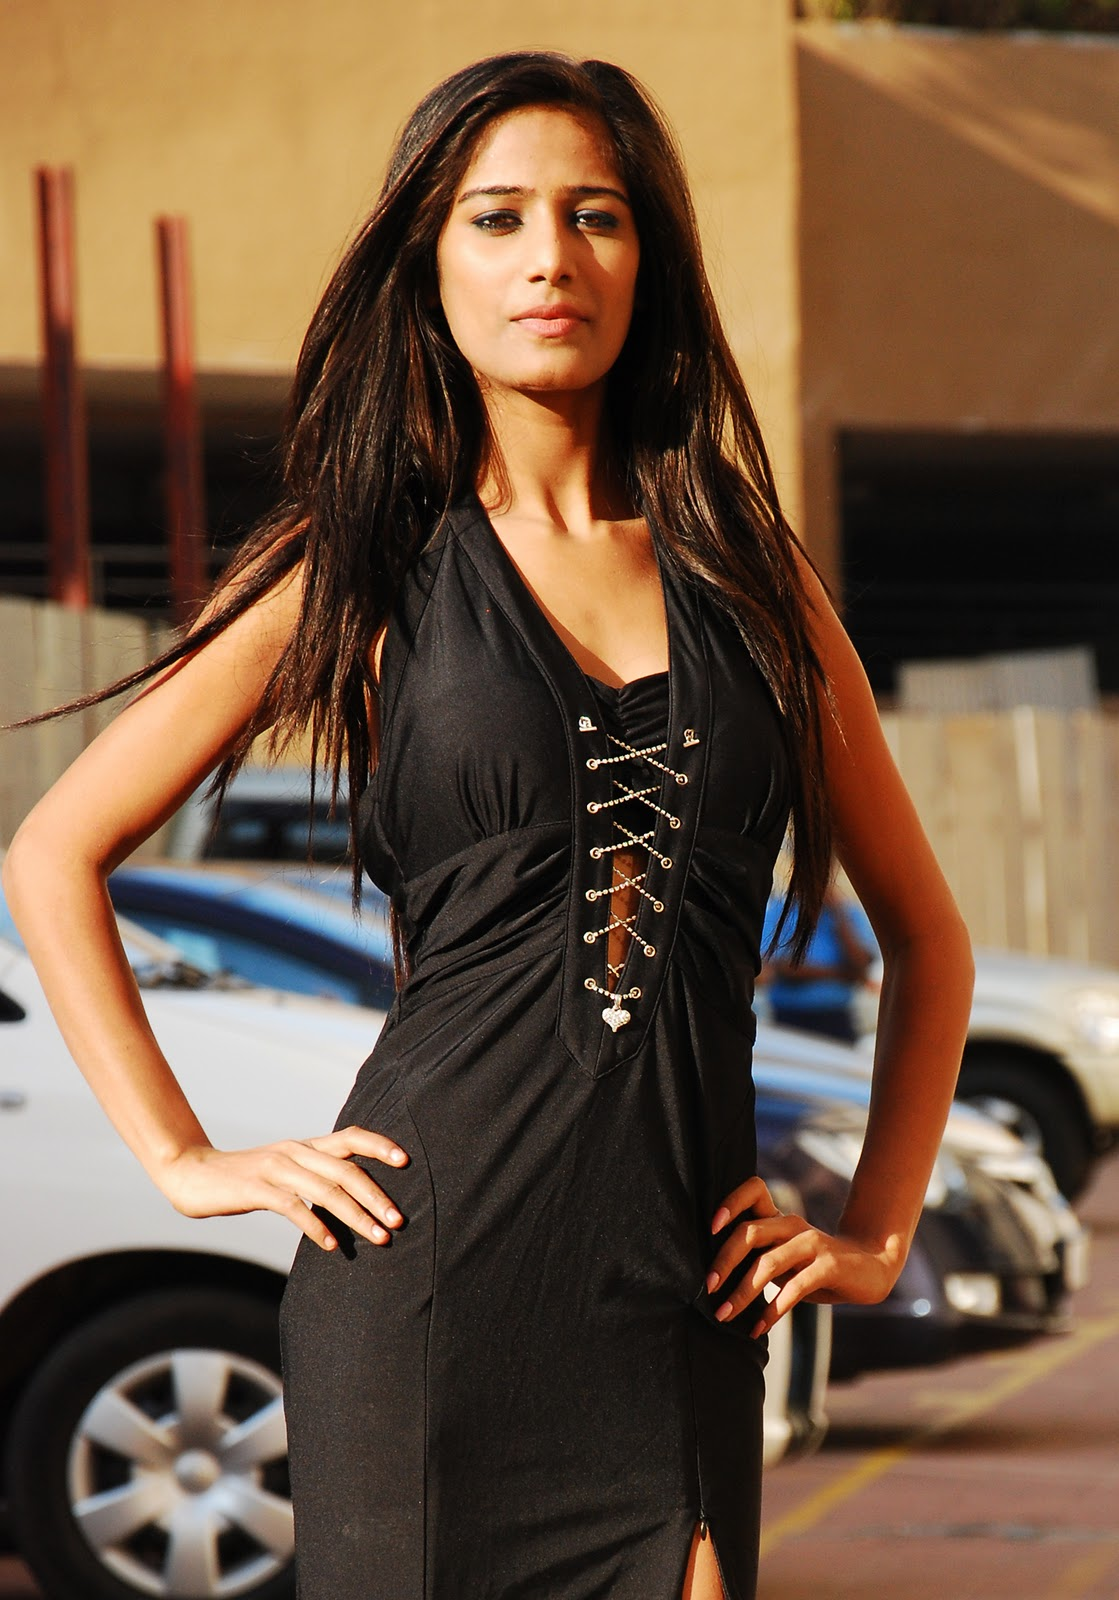 Poonam Pandey Wallpaper, Poonam Pandey strip Pictures, Poonam Pandey strip images, Poonam Pandey Strip Photos, Gallery, pics